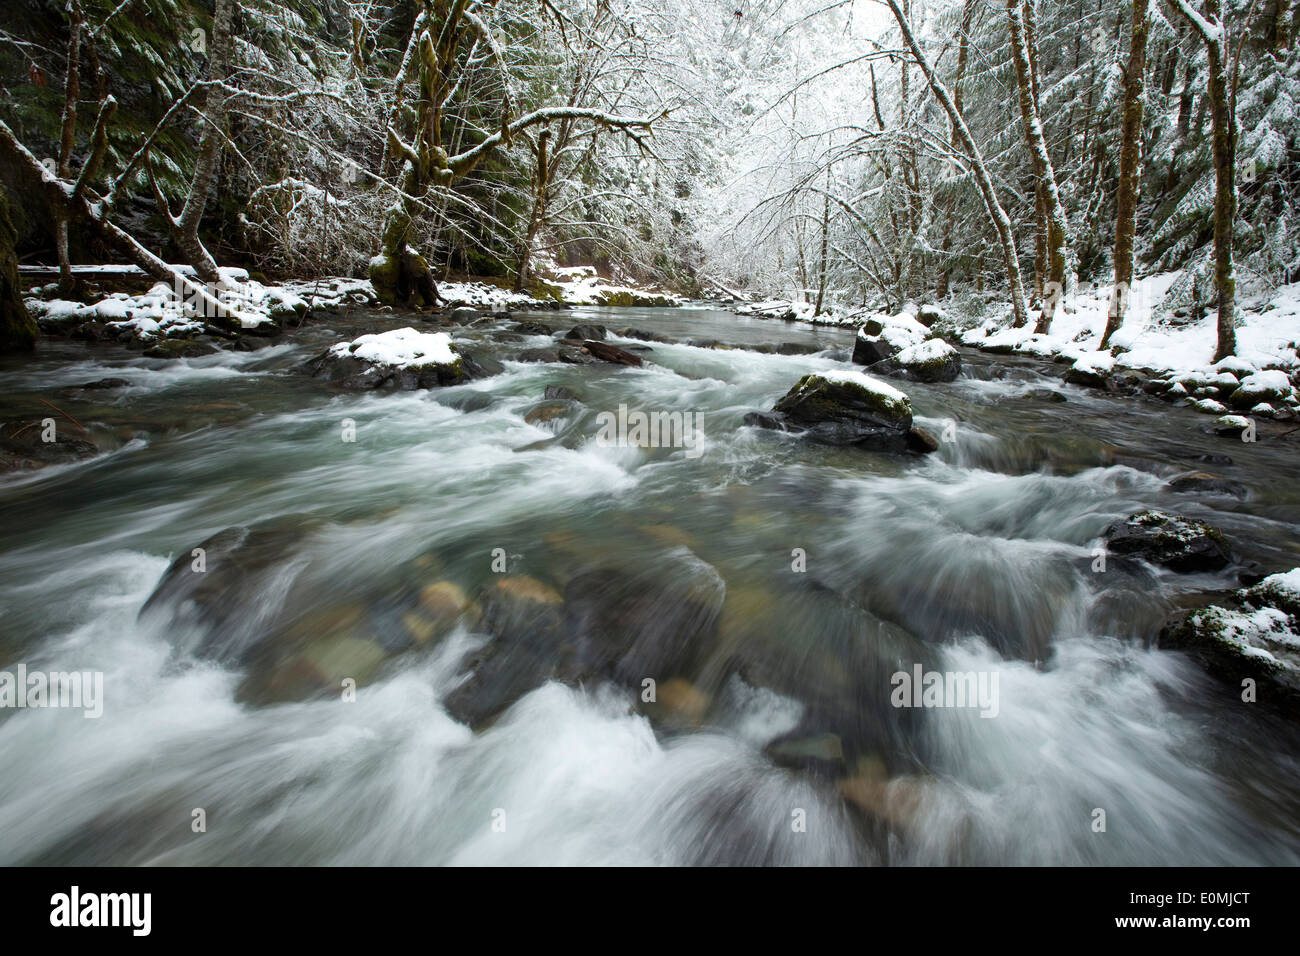 The icy waters of the Row River rush past snow-covered evergreen forests, Oregon, USA - Stock Image